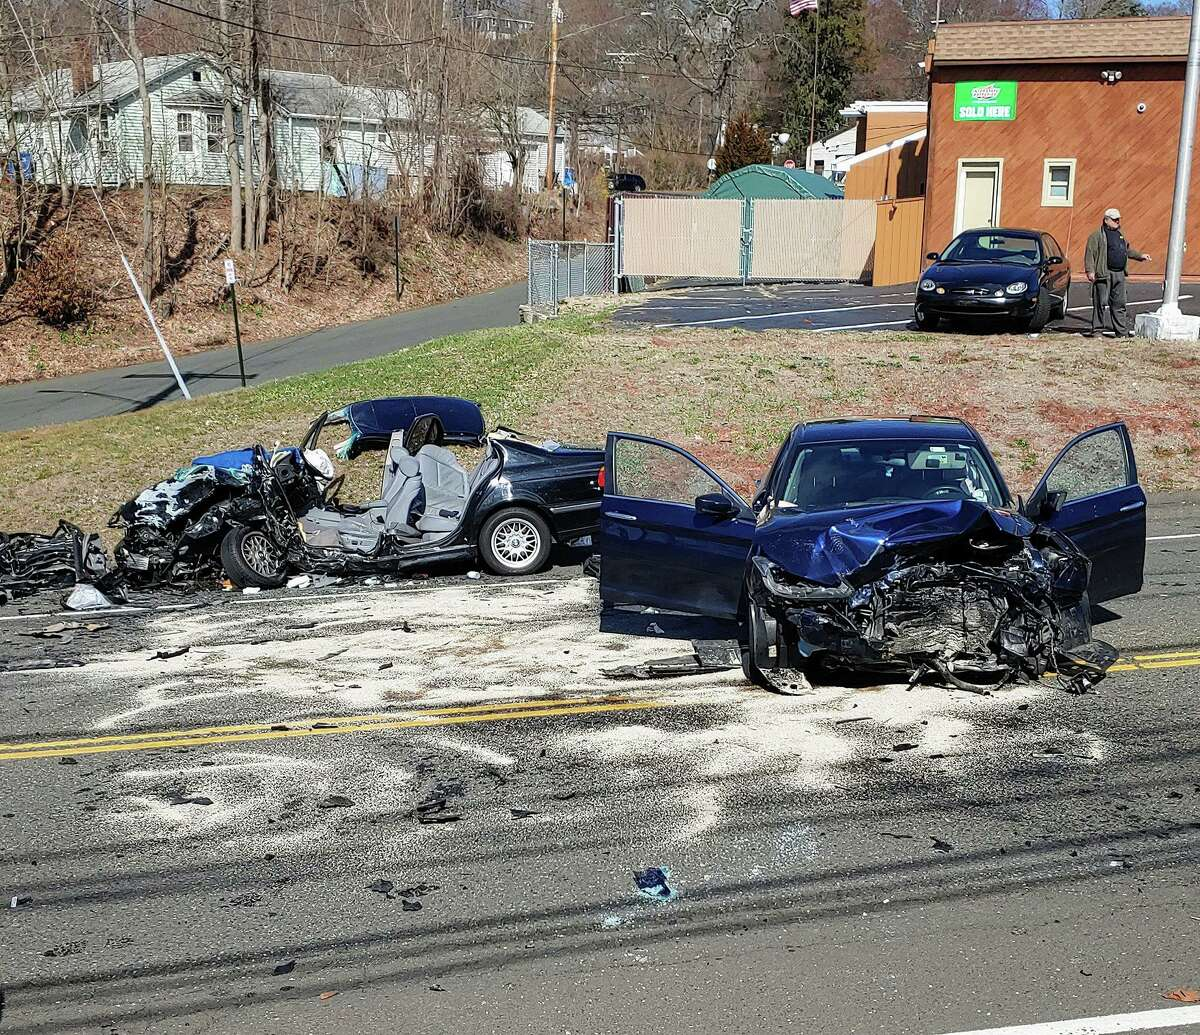 Shelton emergency crews responded to a two-vehicle, head-on collision on River Road Friday, March 27.